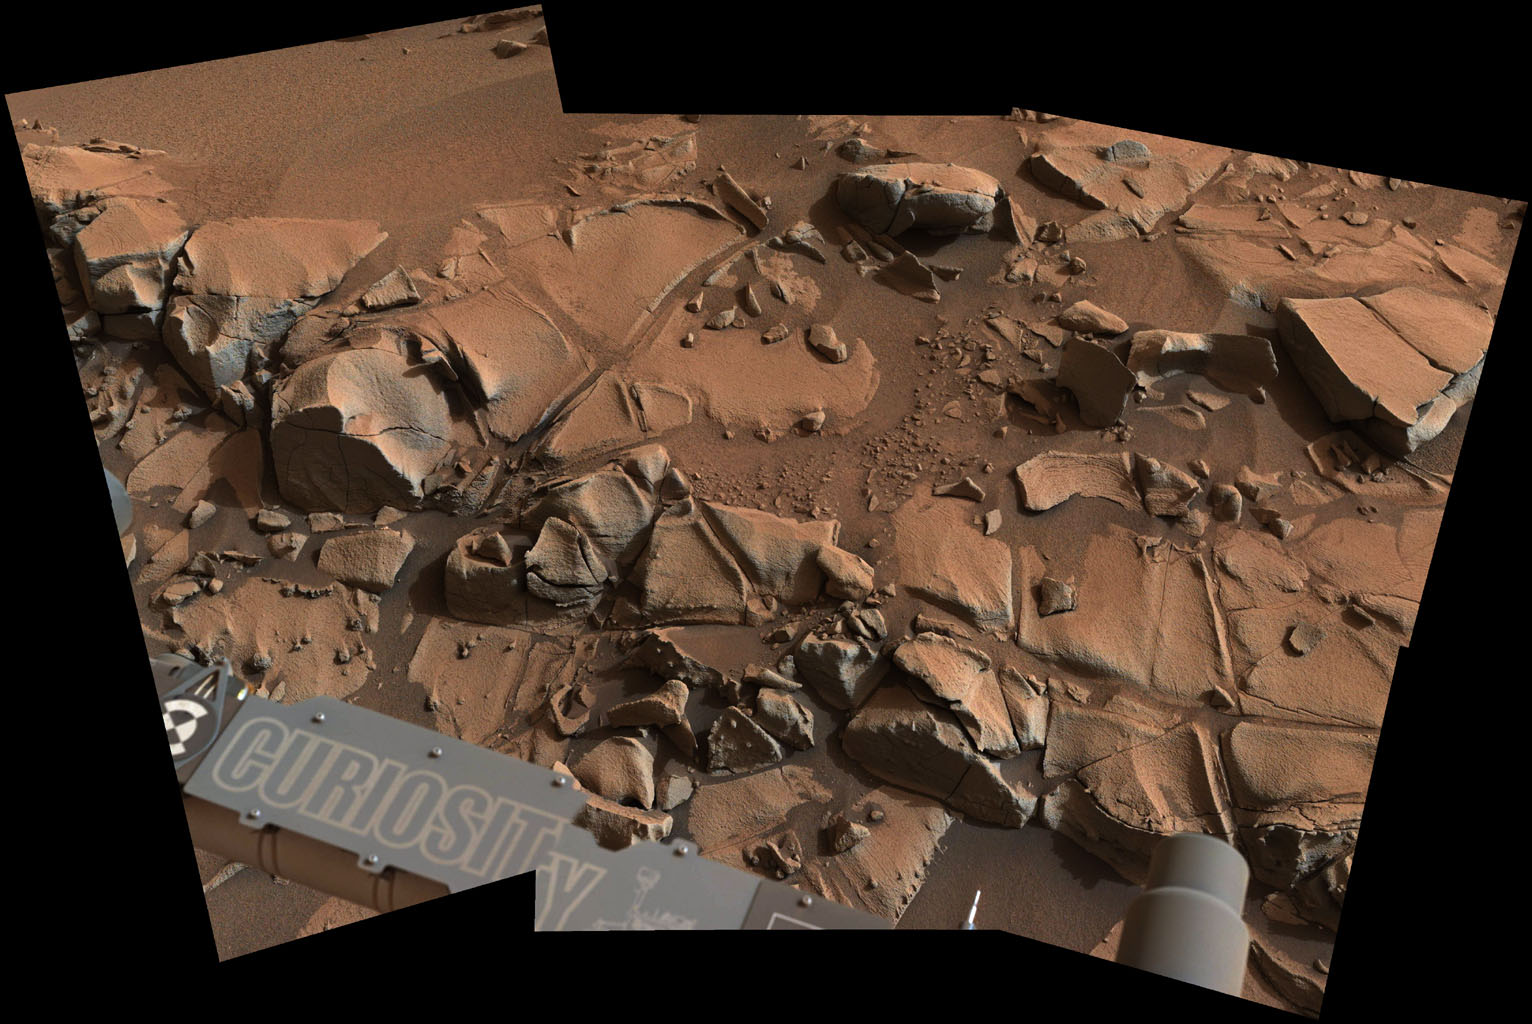 This view from ASA's Curiosity Mars rover shows a swath of bedrock called 'Alexander Hills,' which the rover approached for close-up inspection of selected targets. It is a mosaic of six frames taken on Nov. 23, 2014.